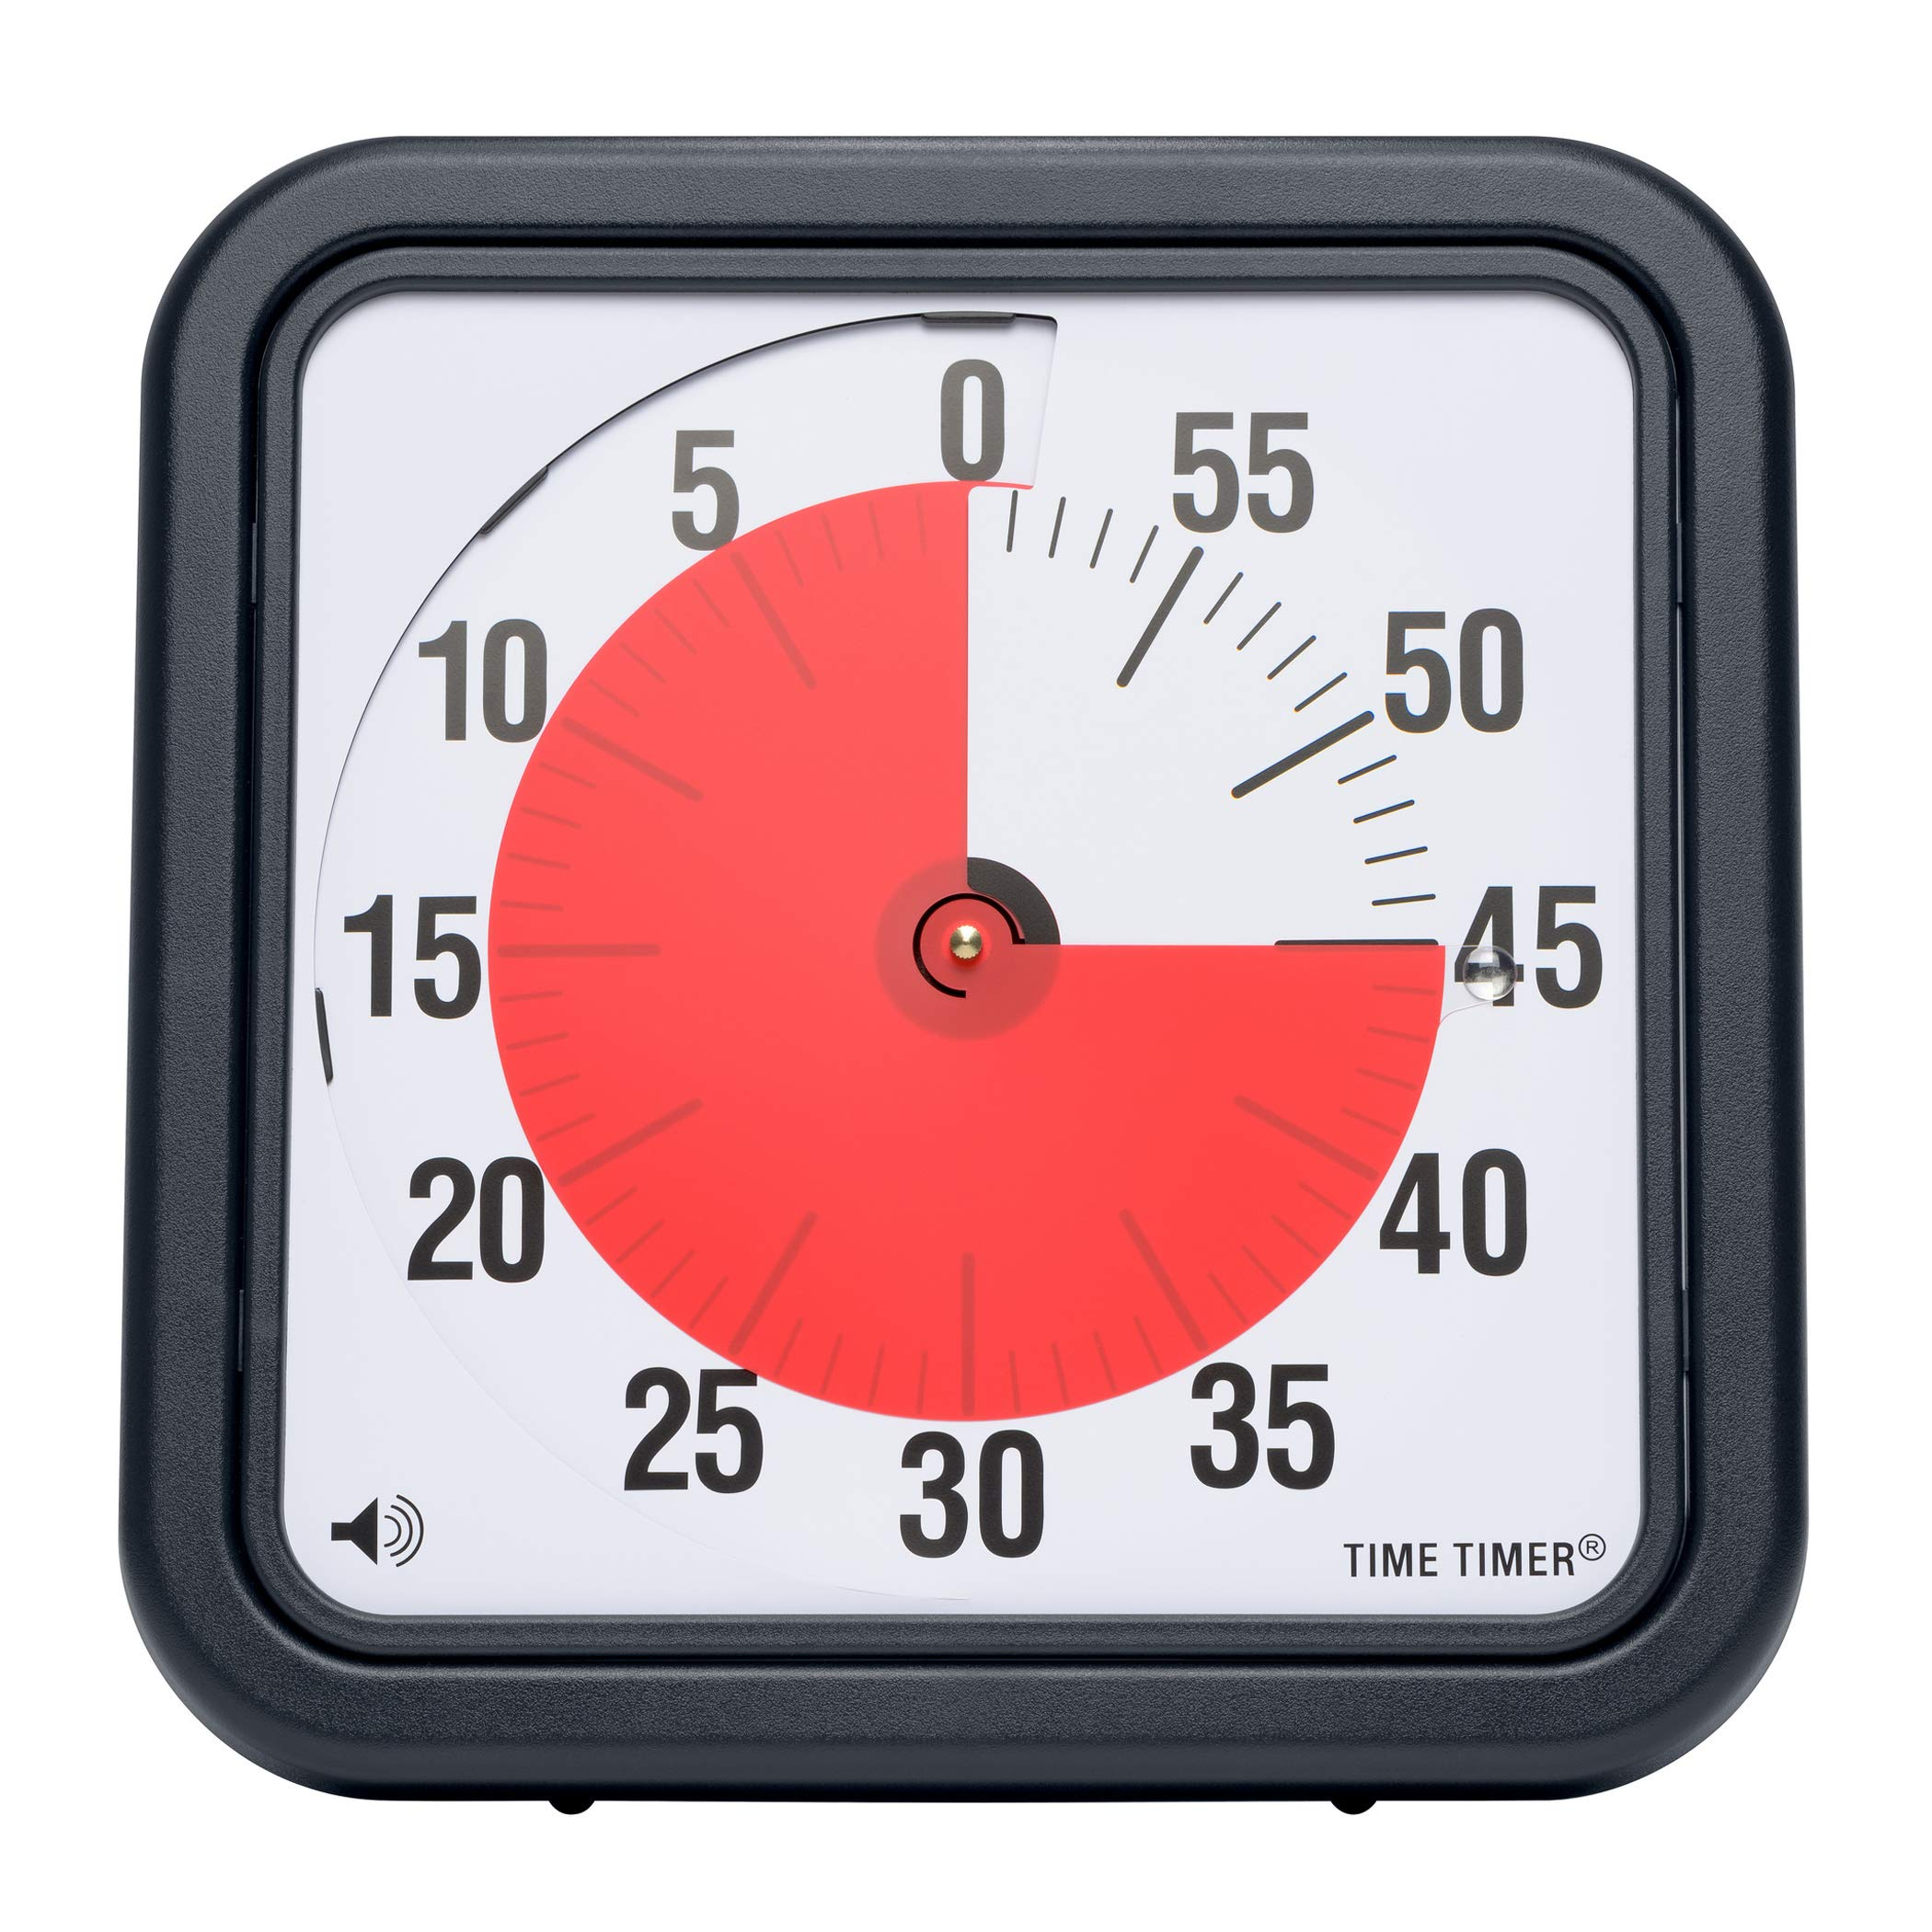 Time Timer Original 12 inch; 60 Minute Visual Timer - Classroom Or Meeting Countdown Clock for Kids and Adults (Black) by Time Timer